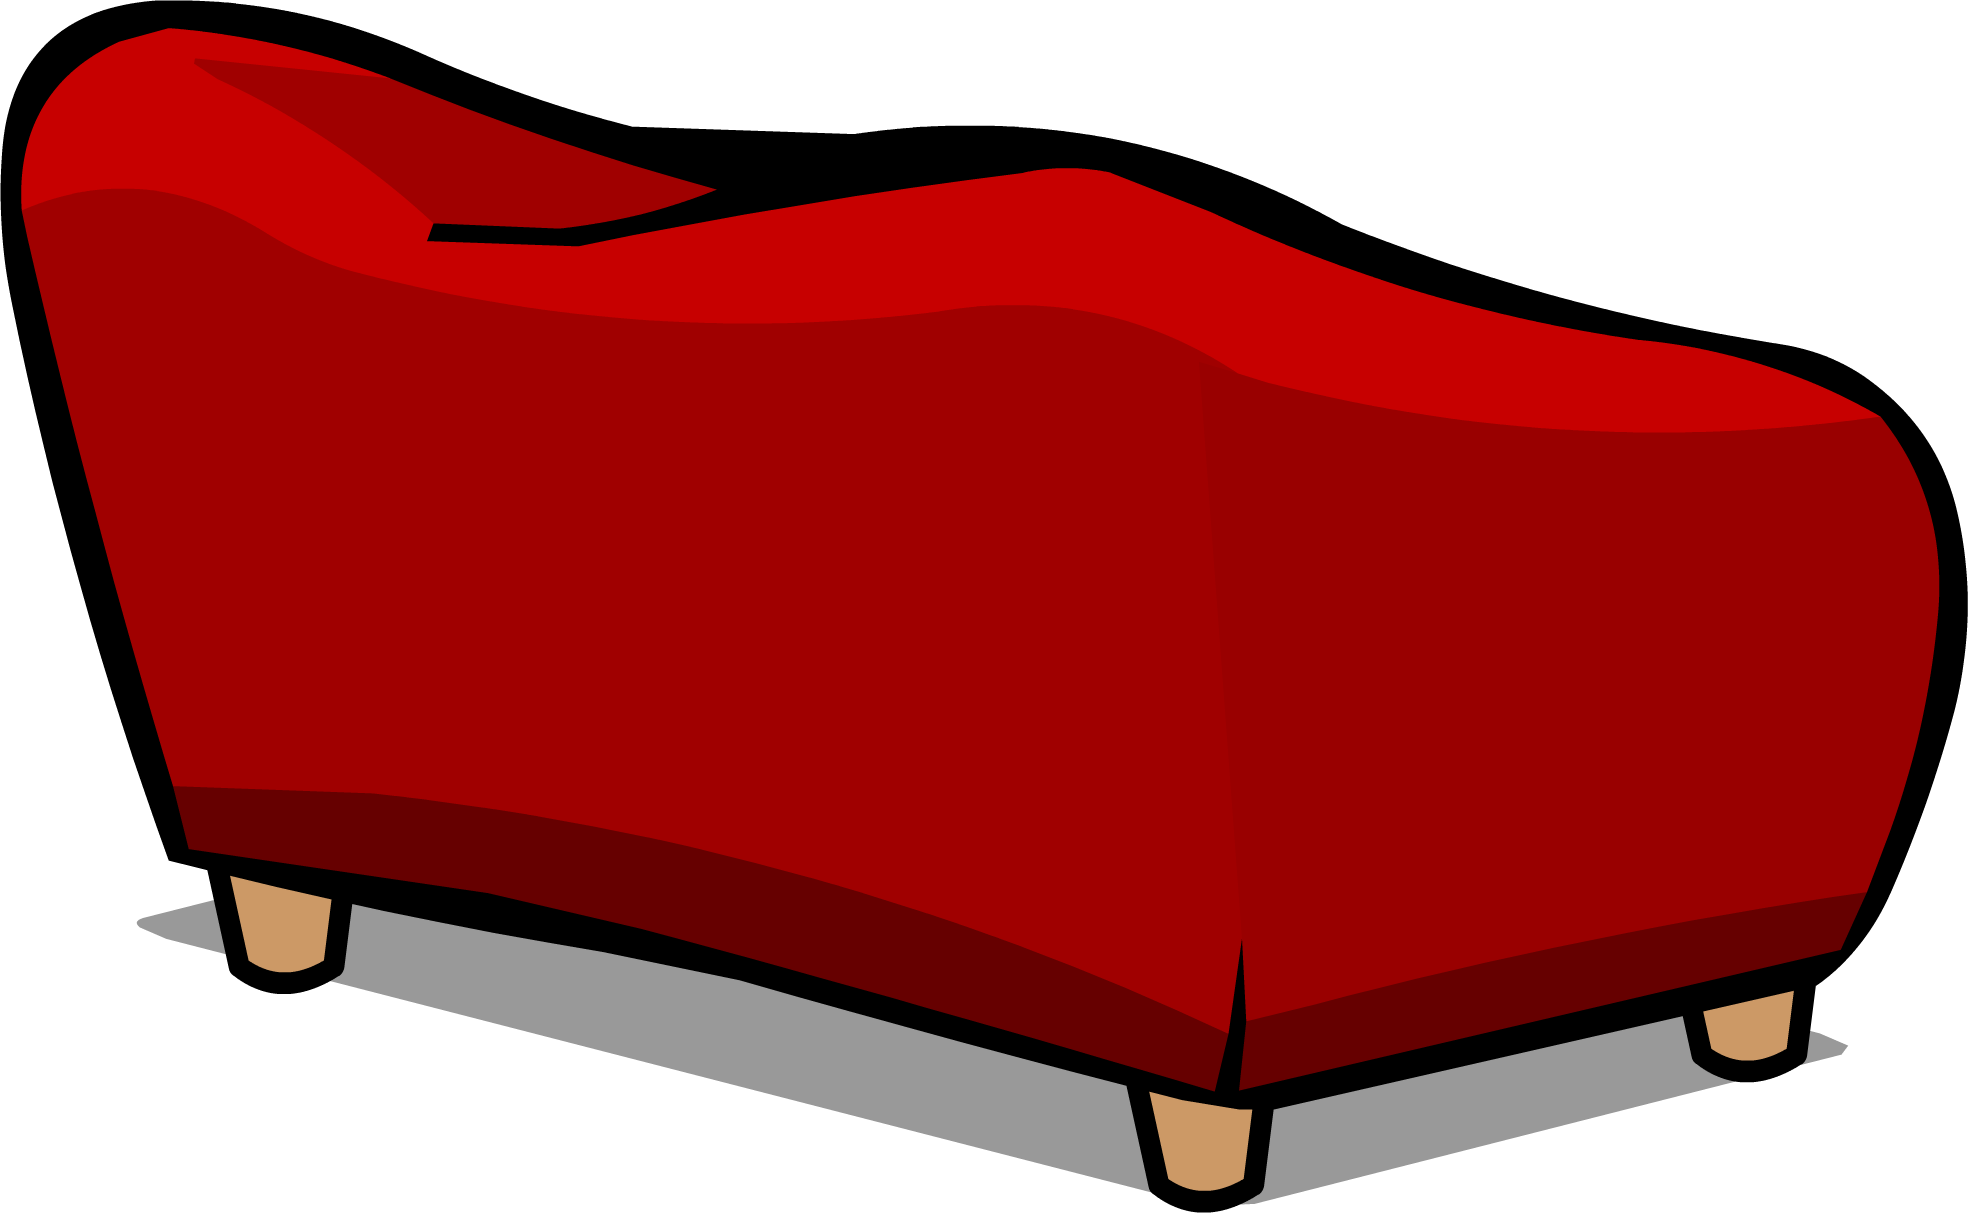 Image red plush sprite. Couch clipart lie on couch